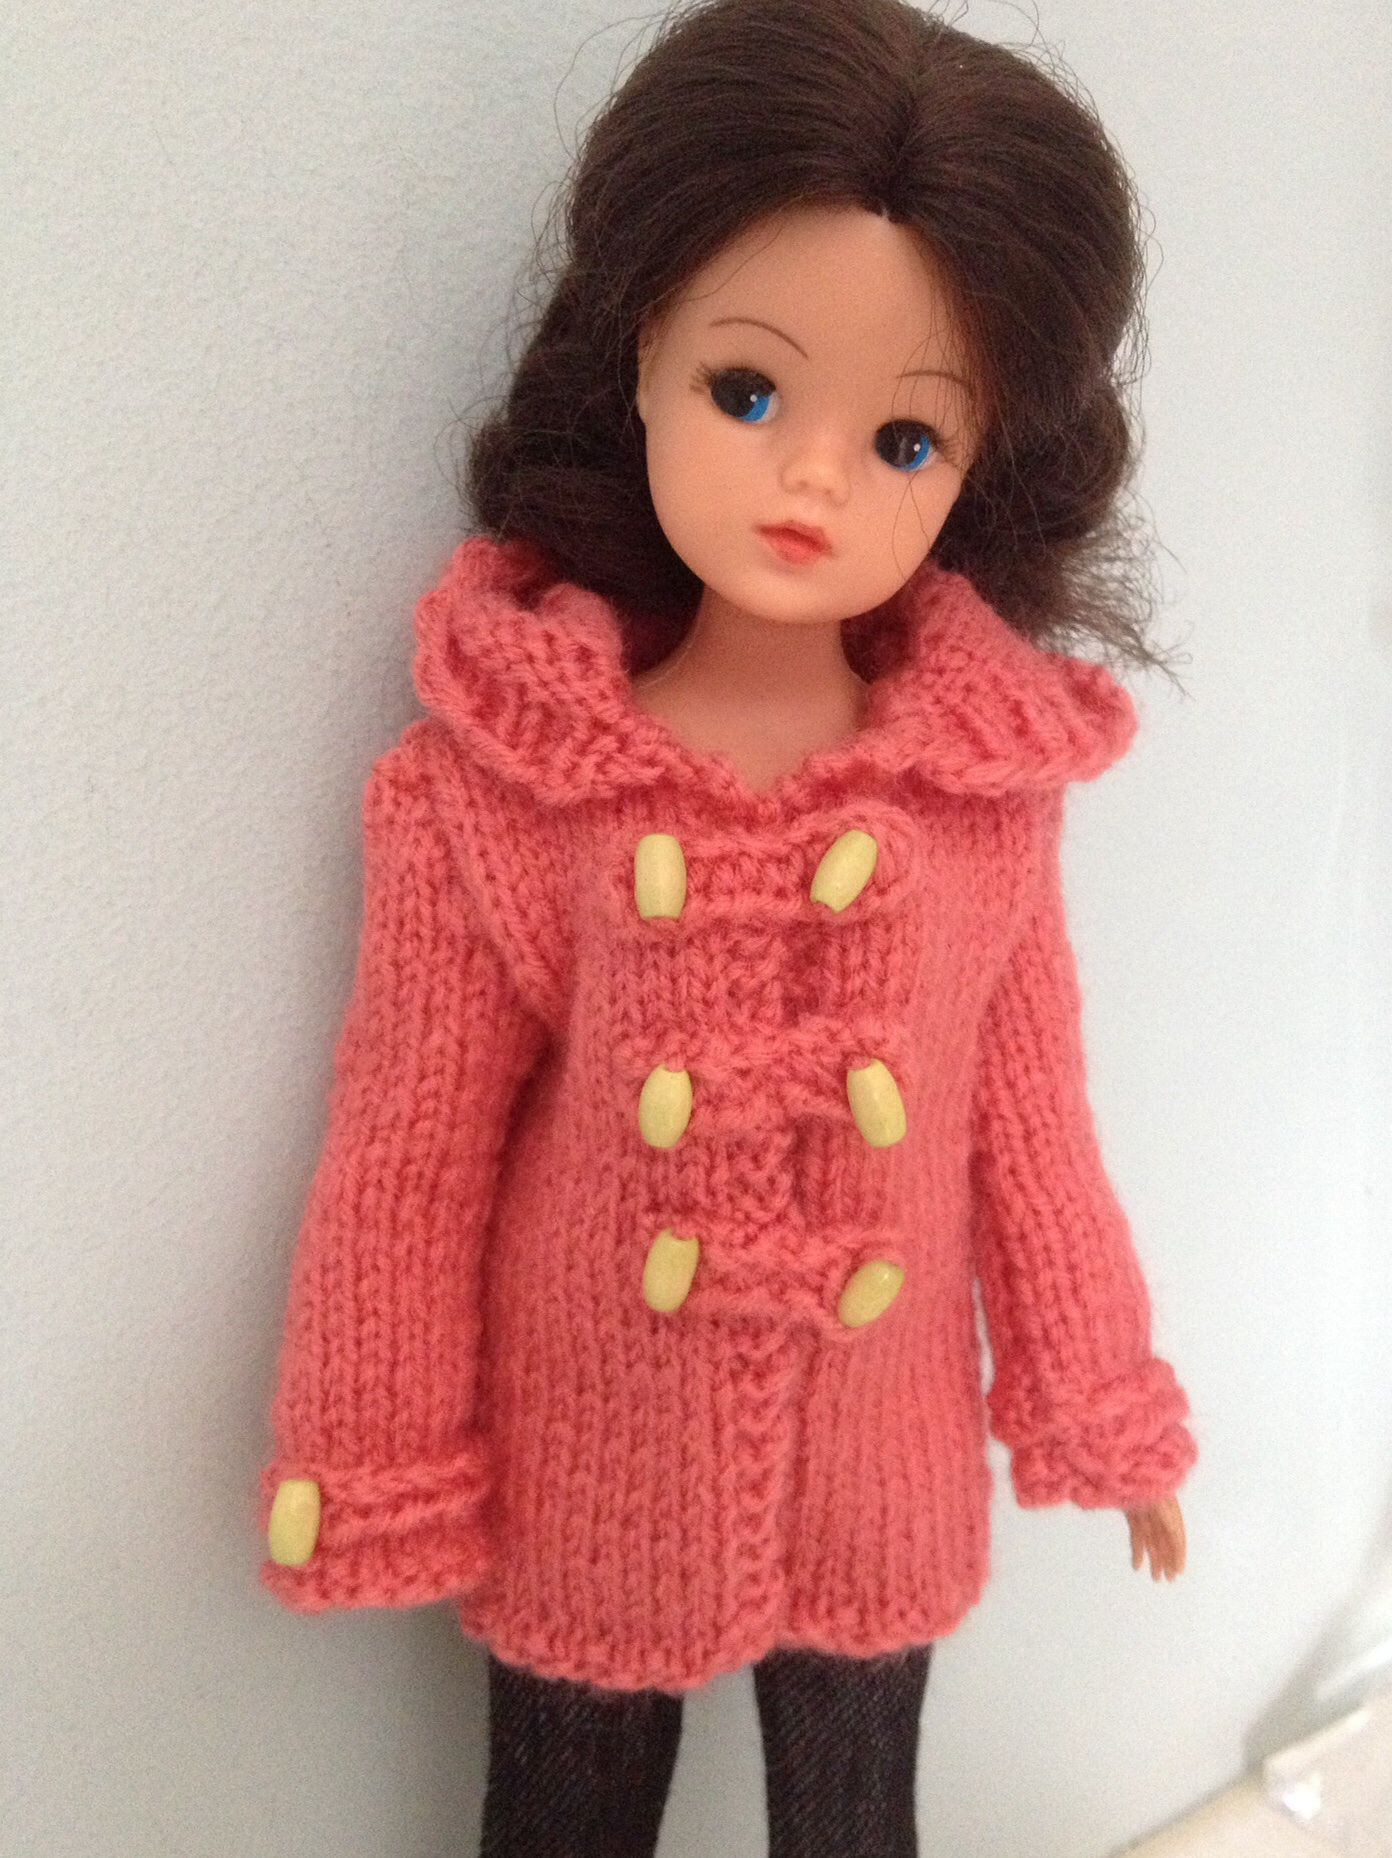 Hand Knitted Duffle Coat For Sindy Vintage Fashion Dolls